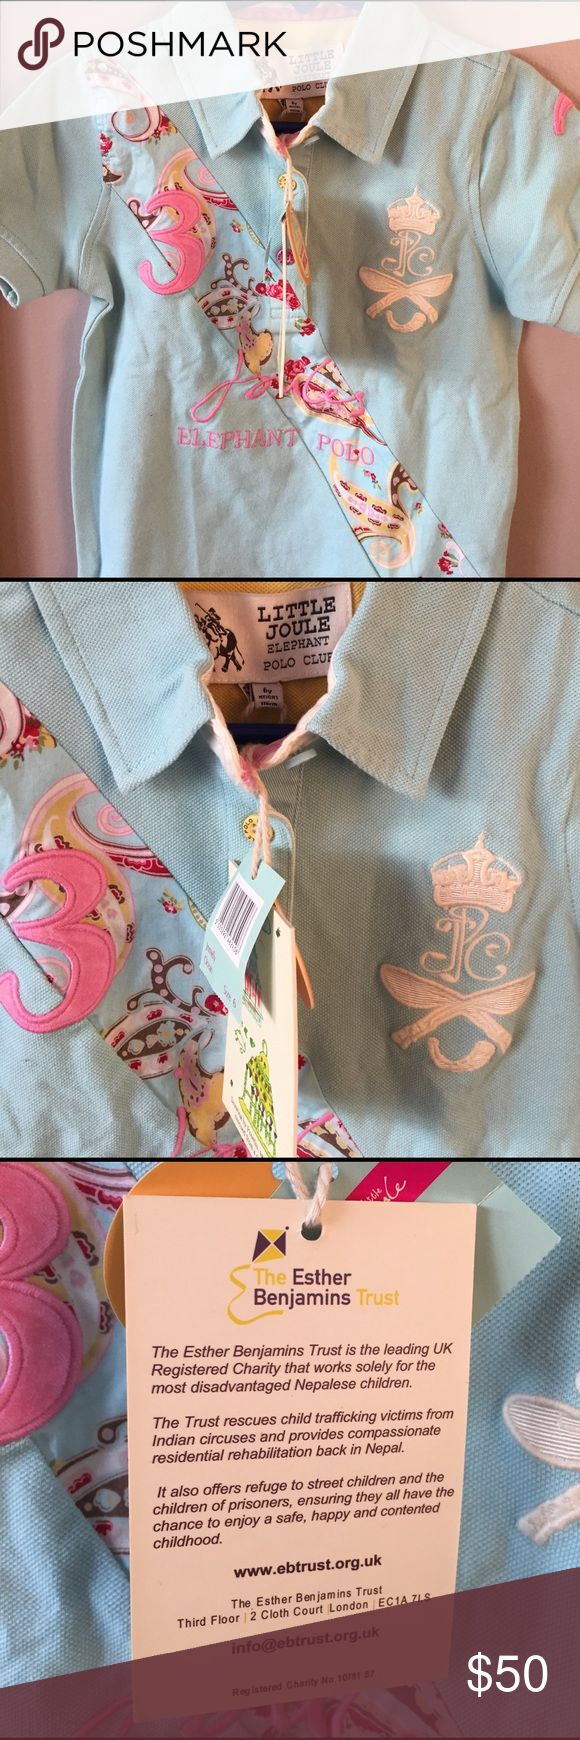 """NWT Little Joules Blue Girl's Top/Dress Sz. 6 💙 Length is 18"""". Armpit to armpit measures 13"""". Designed for the Esther Benjamin Trust helping Nepalese children. Pet free smoke free home. Little Joules Shirts & Tops Polos"""